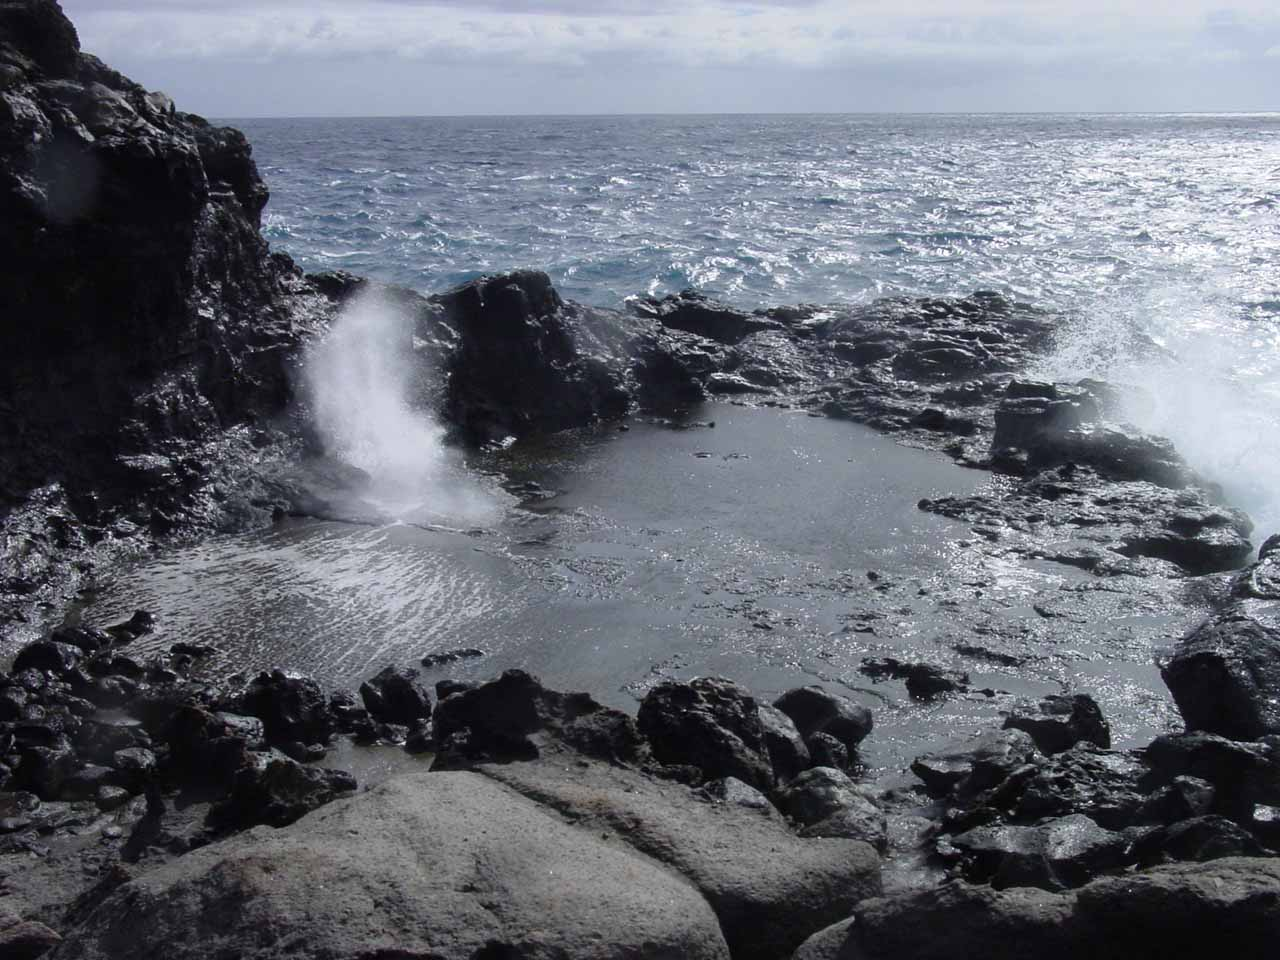 Looking over a smaller blowhole